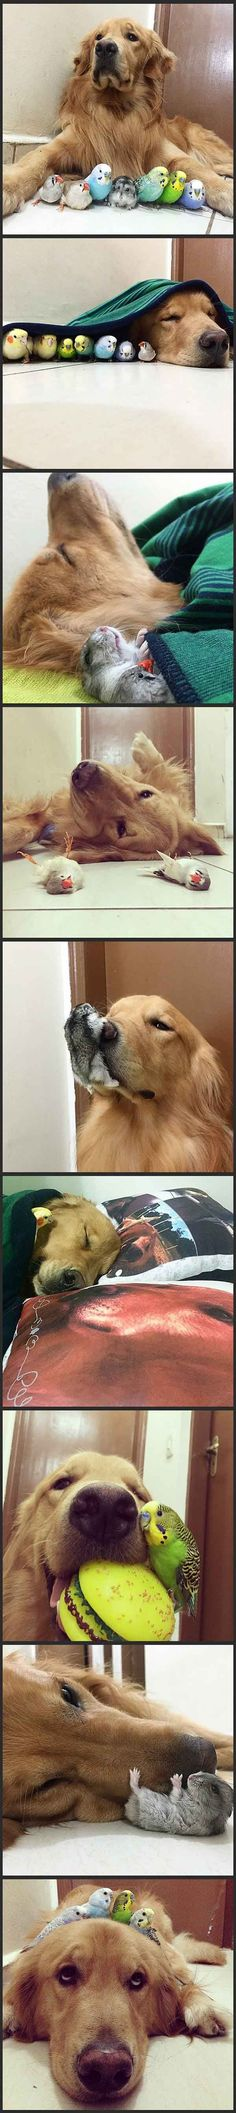 Best of Friends! ❤ A dog, 8 birds, and a cute hamster are best friends...click link for more photos.